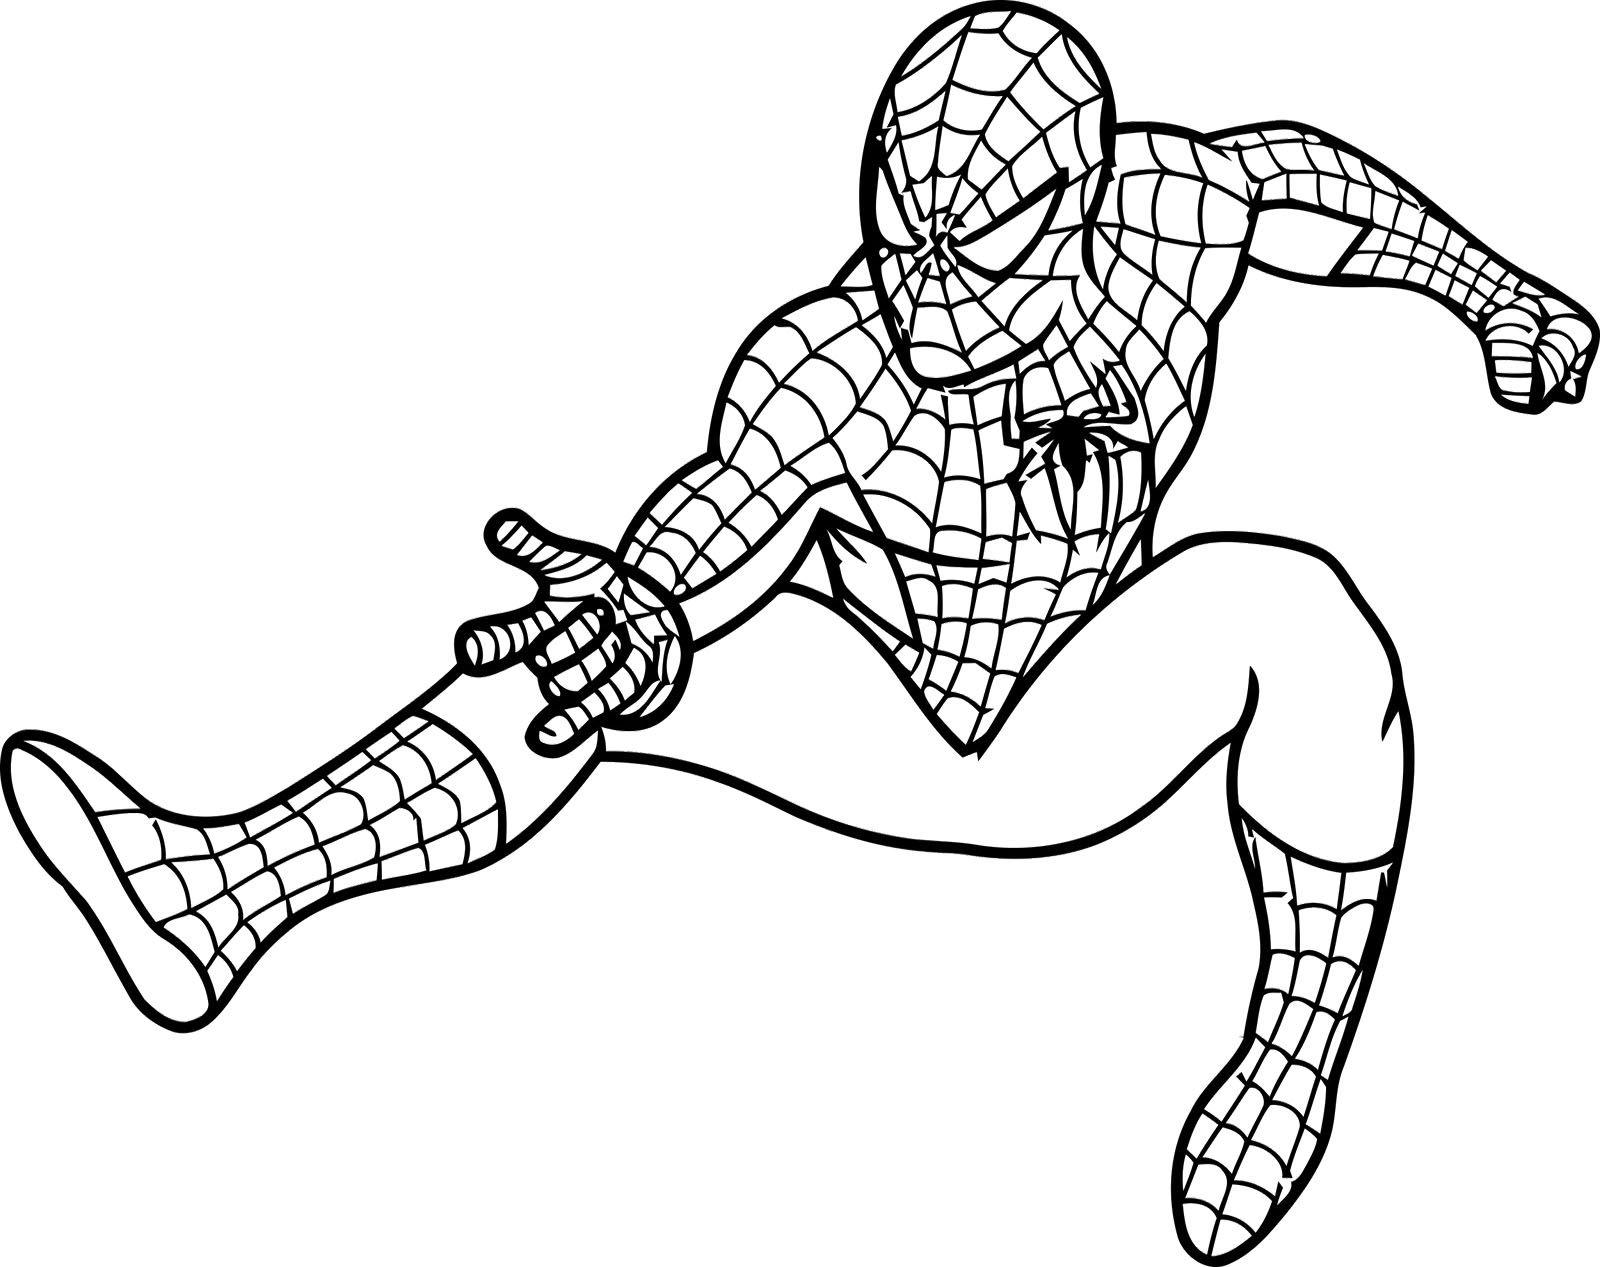 Spiderman coloring pages pinterest tumblr google yahoo imgur wallpapers spiderman coloring pages images